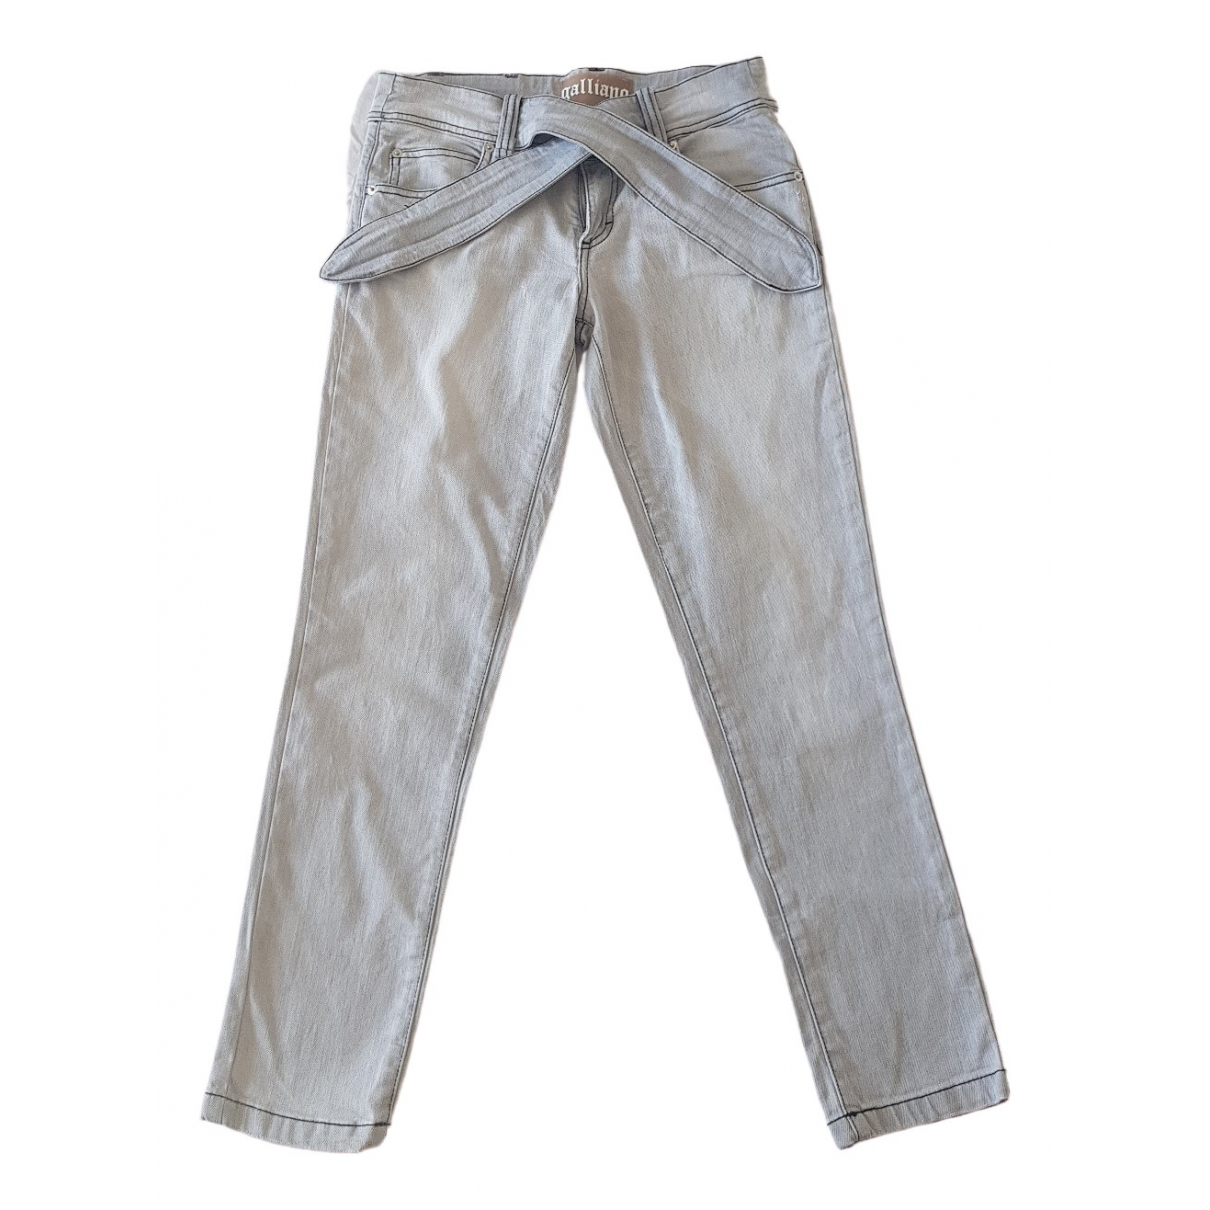 Galliano \N Grey Cotton Jeans for Women 36 FR